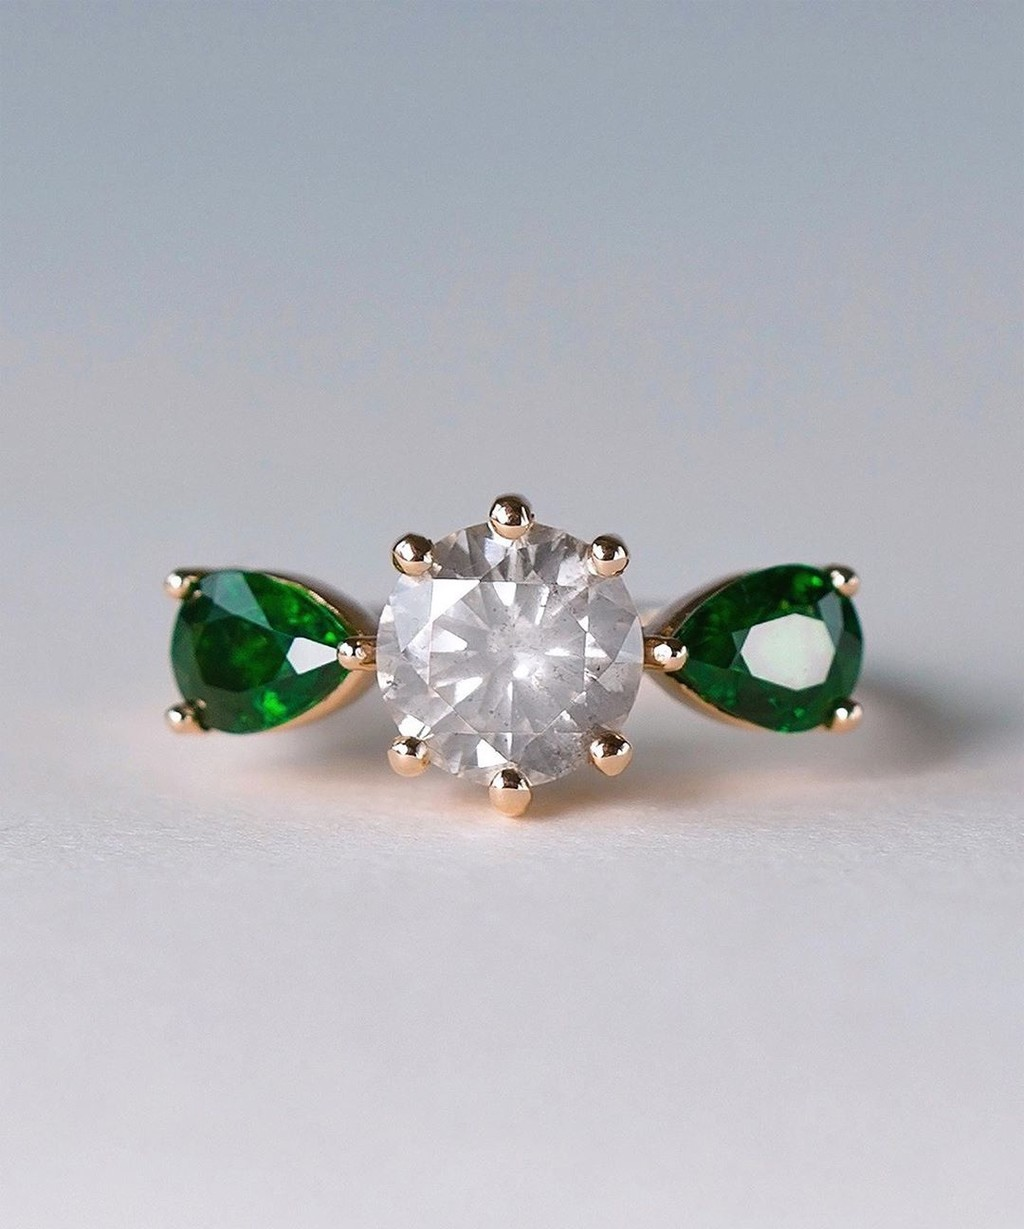 Minimal, modern, and with just a touch of magic 💙🌀💫 This Post-consumer vintage diamond and Tsavorite ring glows with an almost